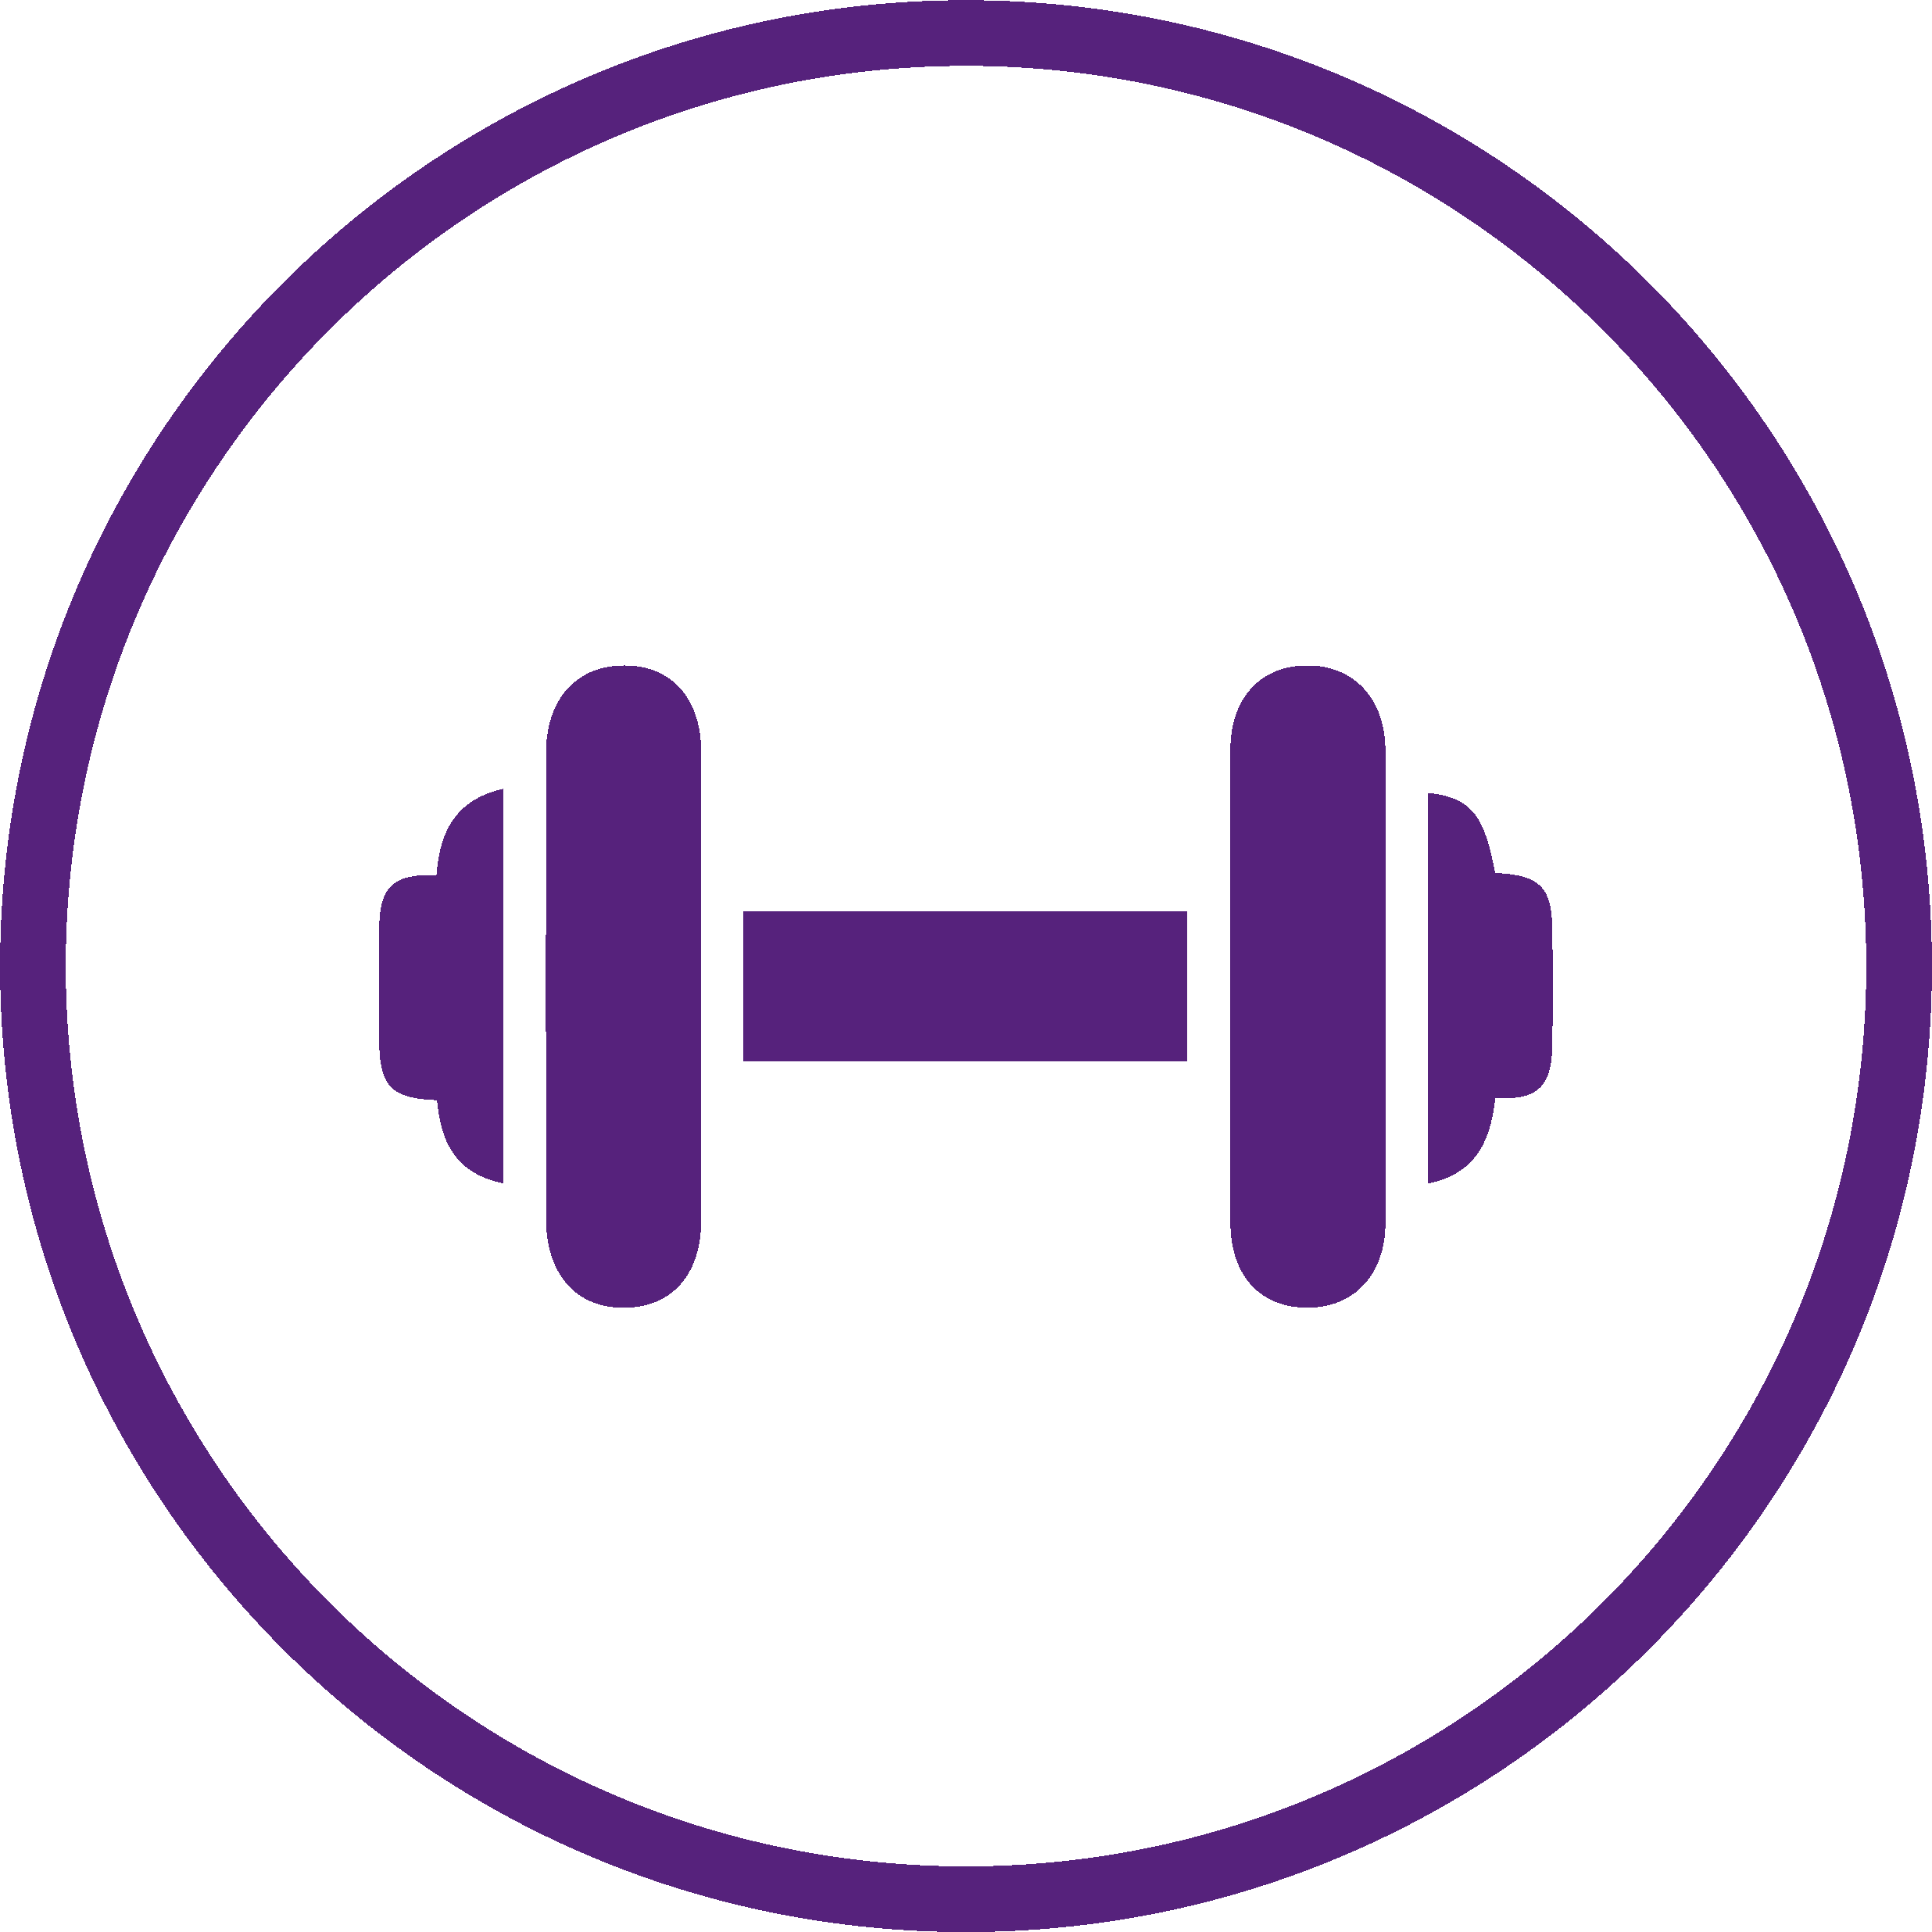 purple logo of a gym dumbell